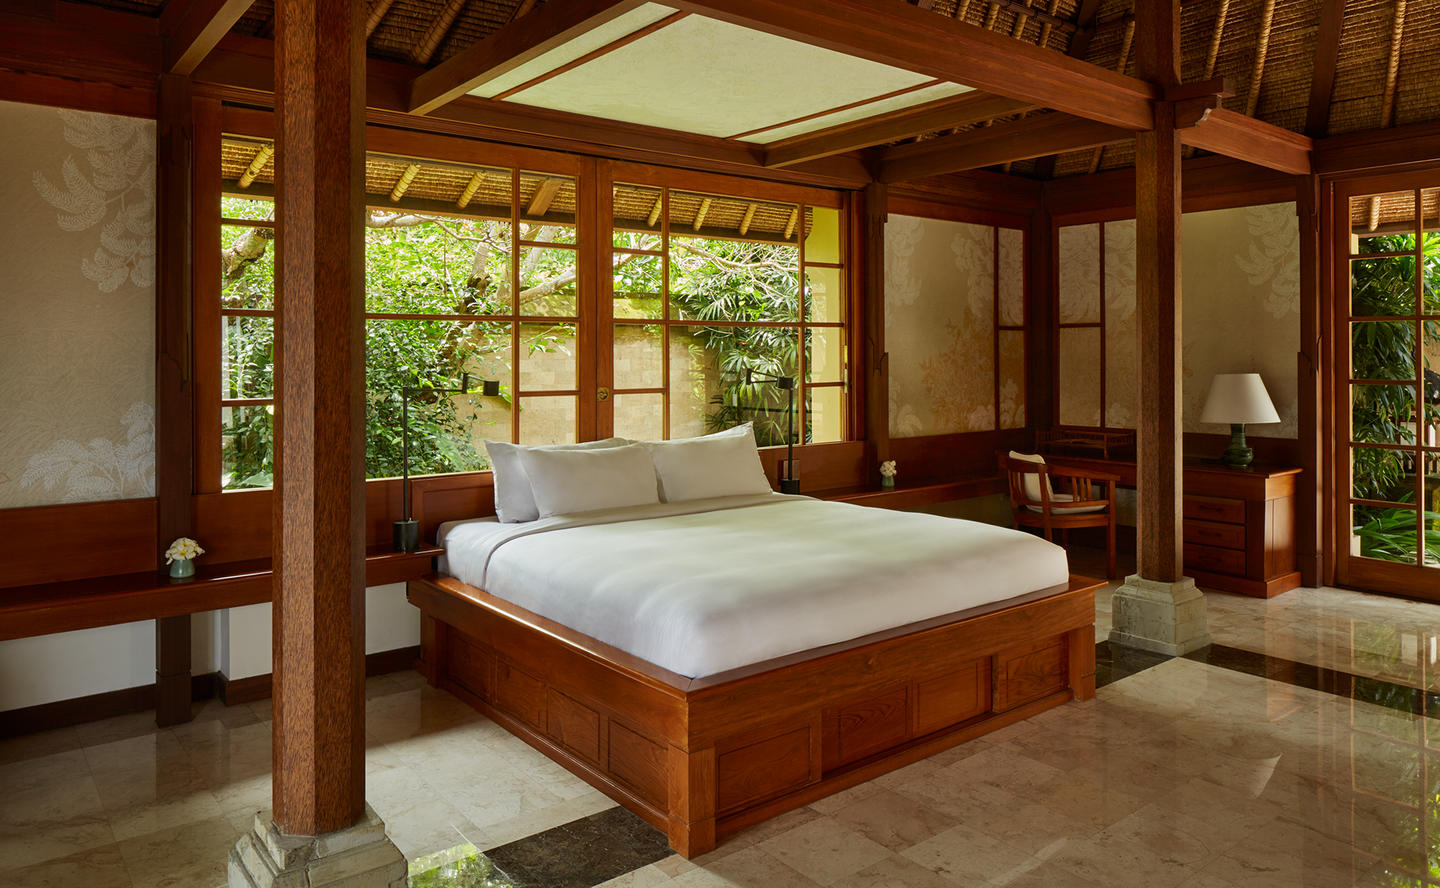 Bedroom, Valley Suite - Amandari, Bali